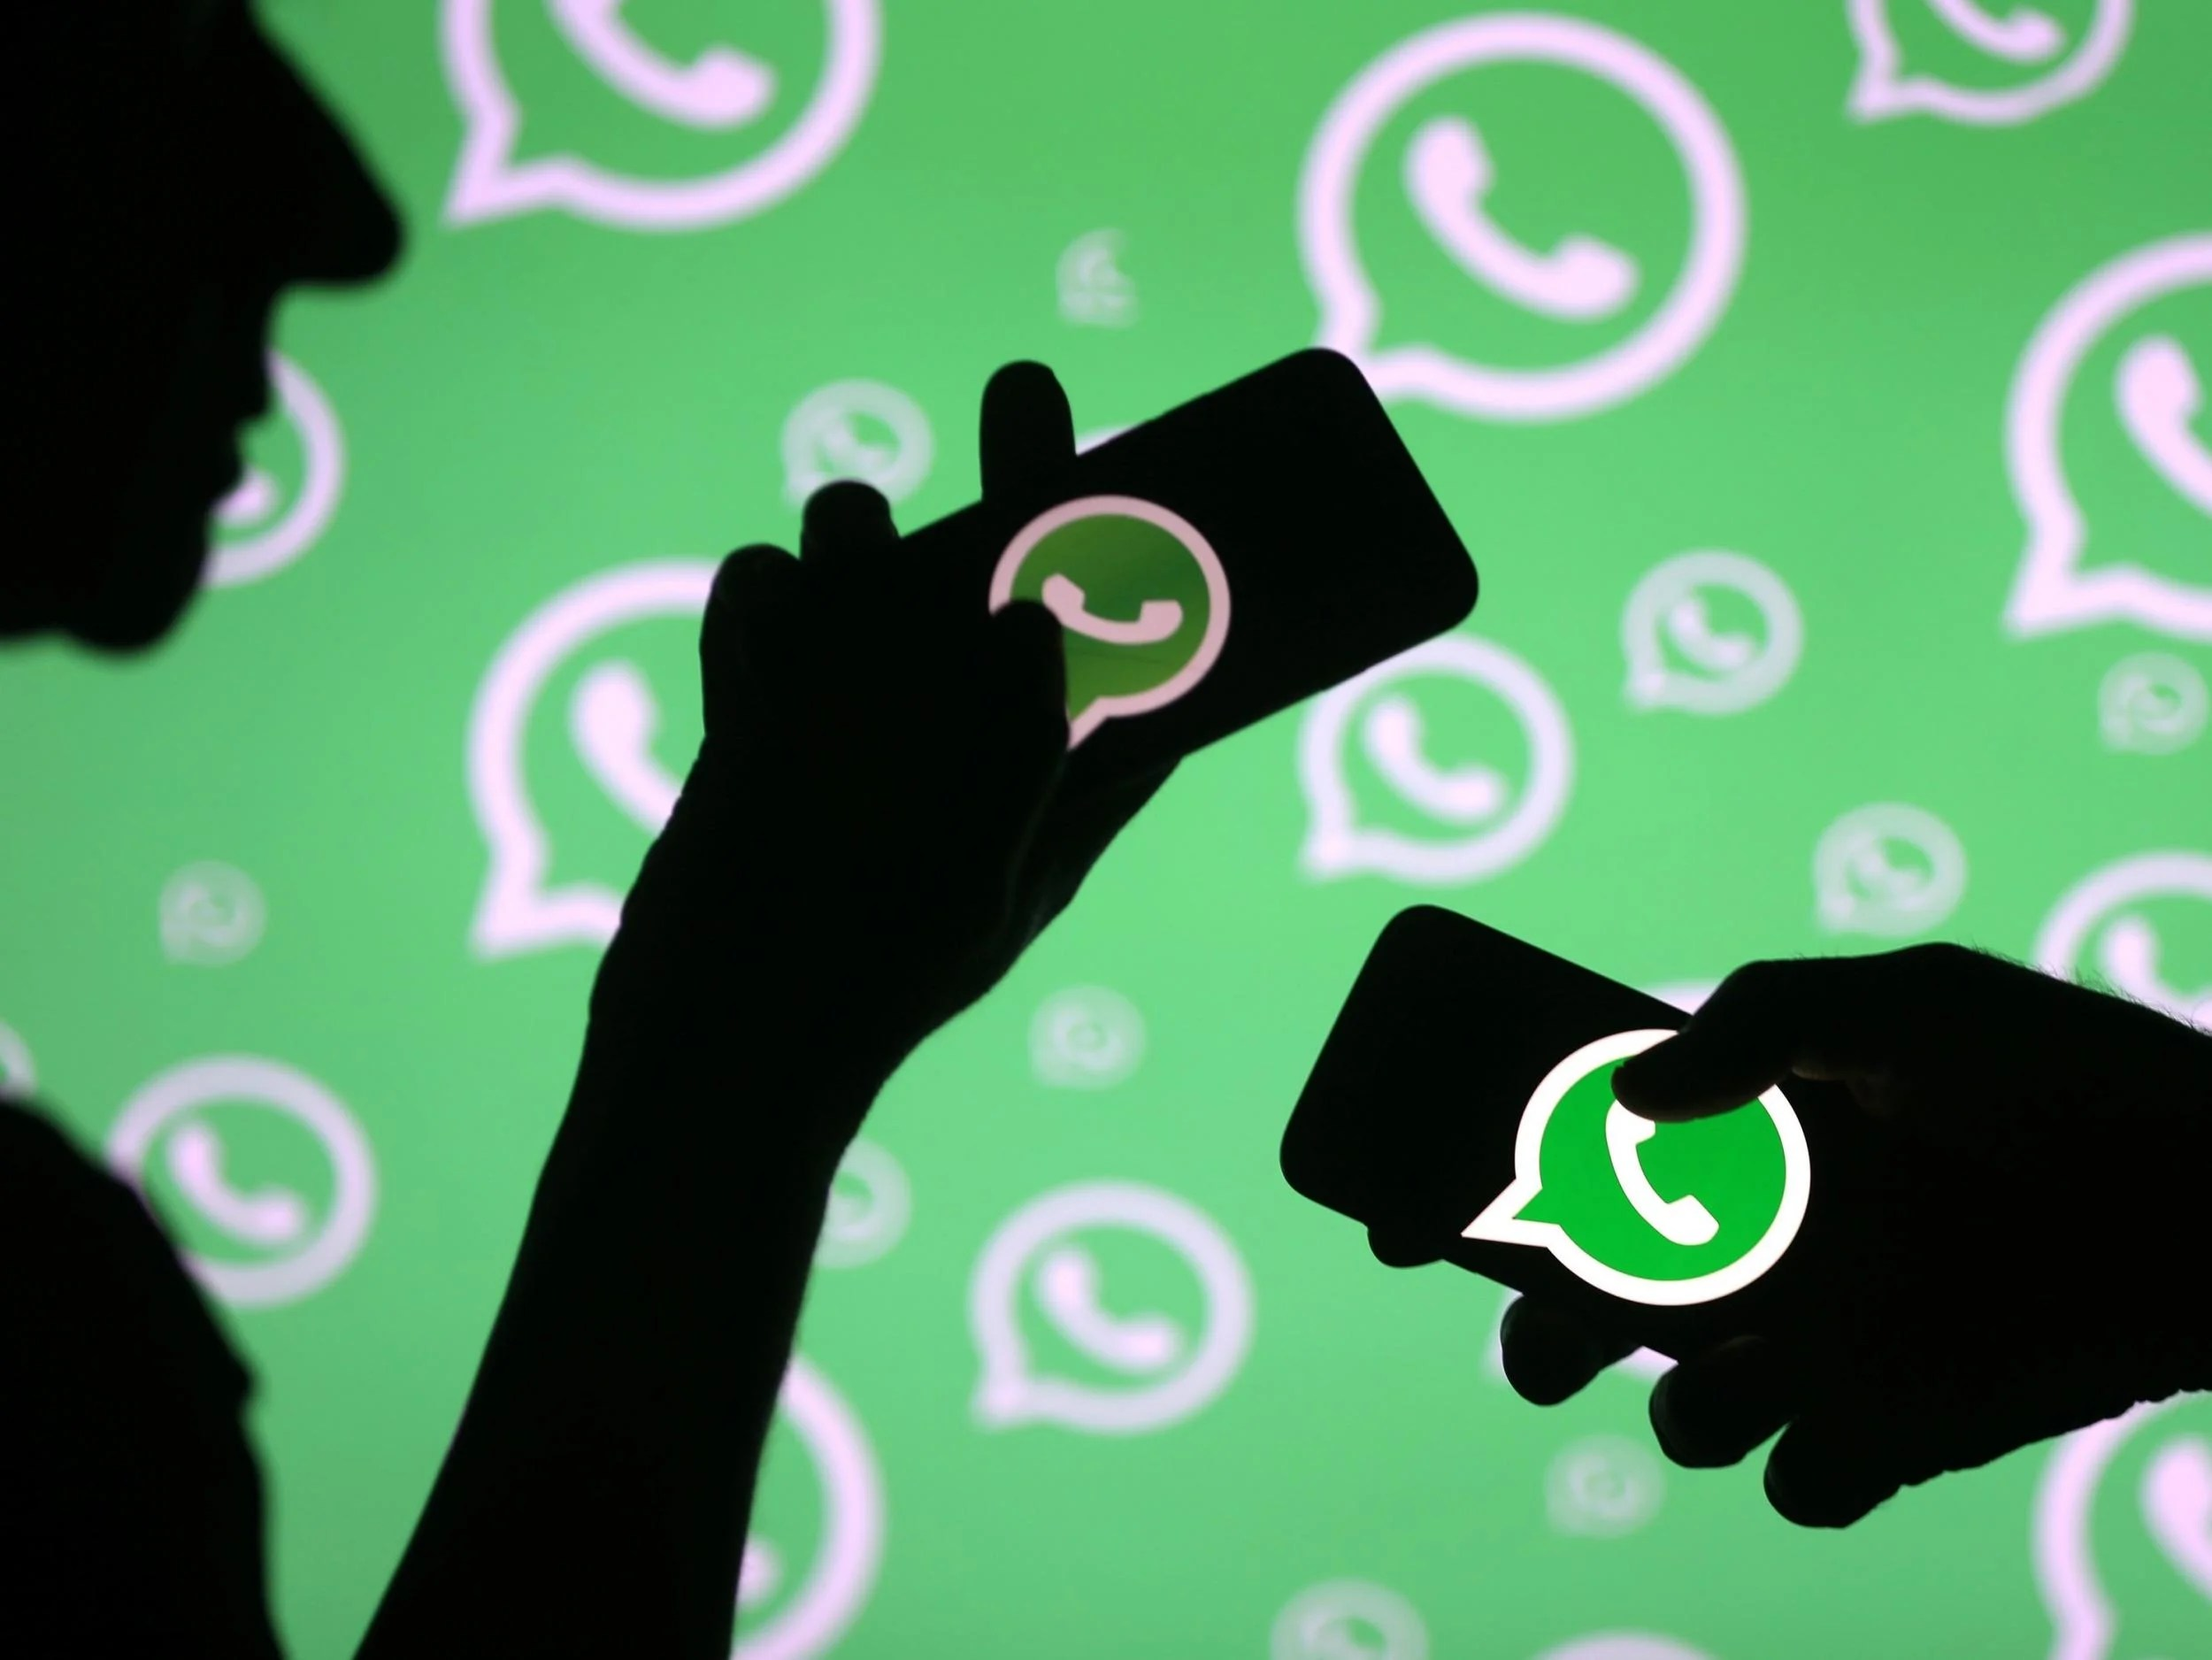 WhatsApp is about to stop working on millions of phones